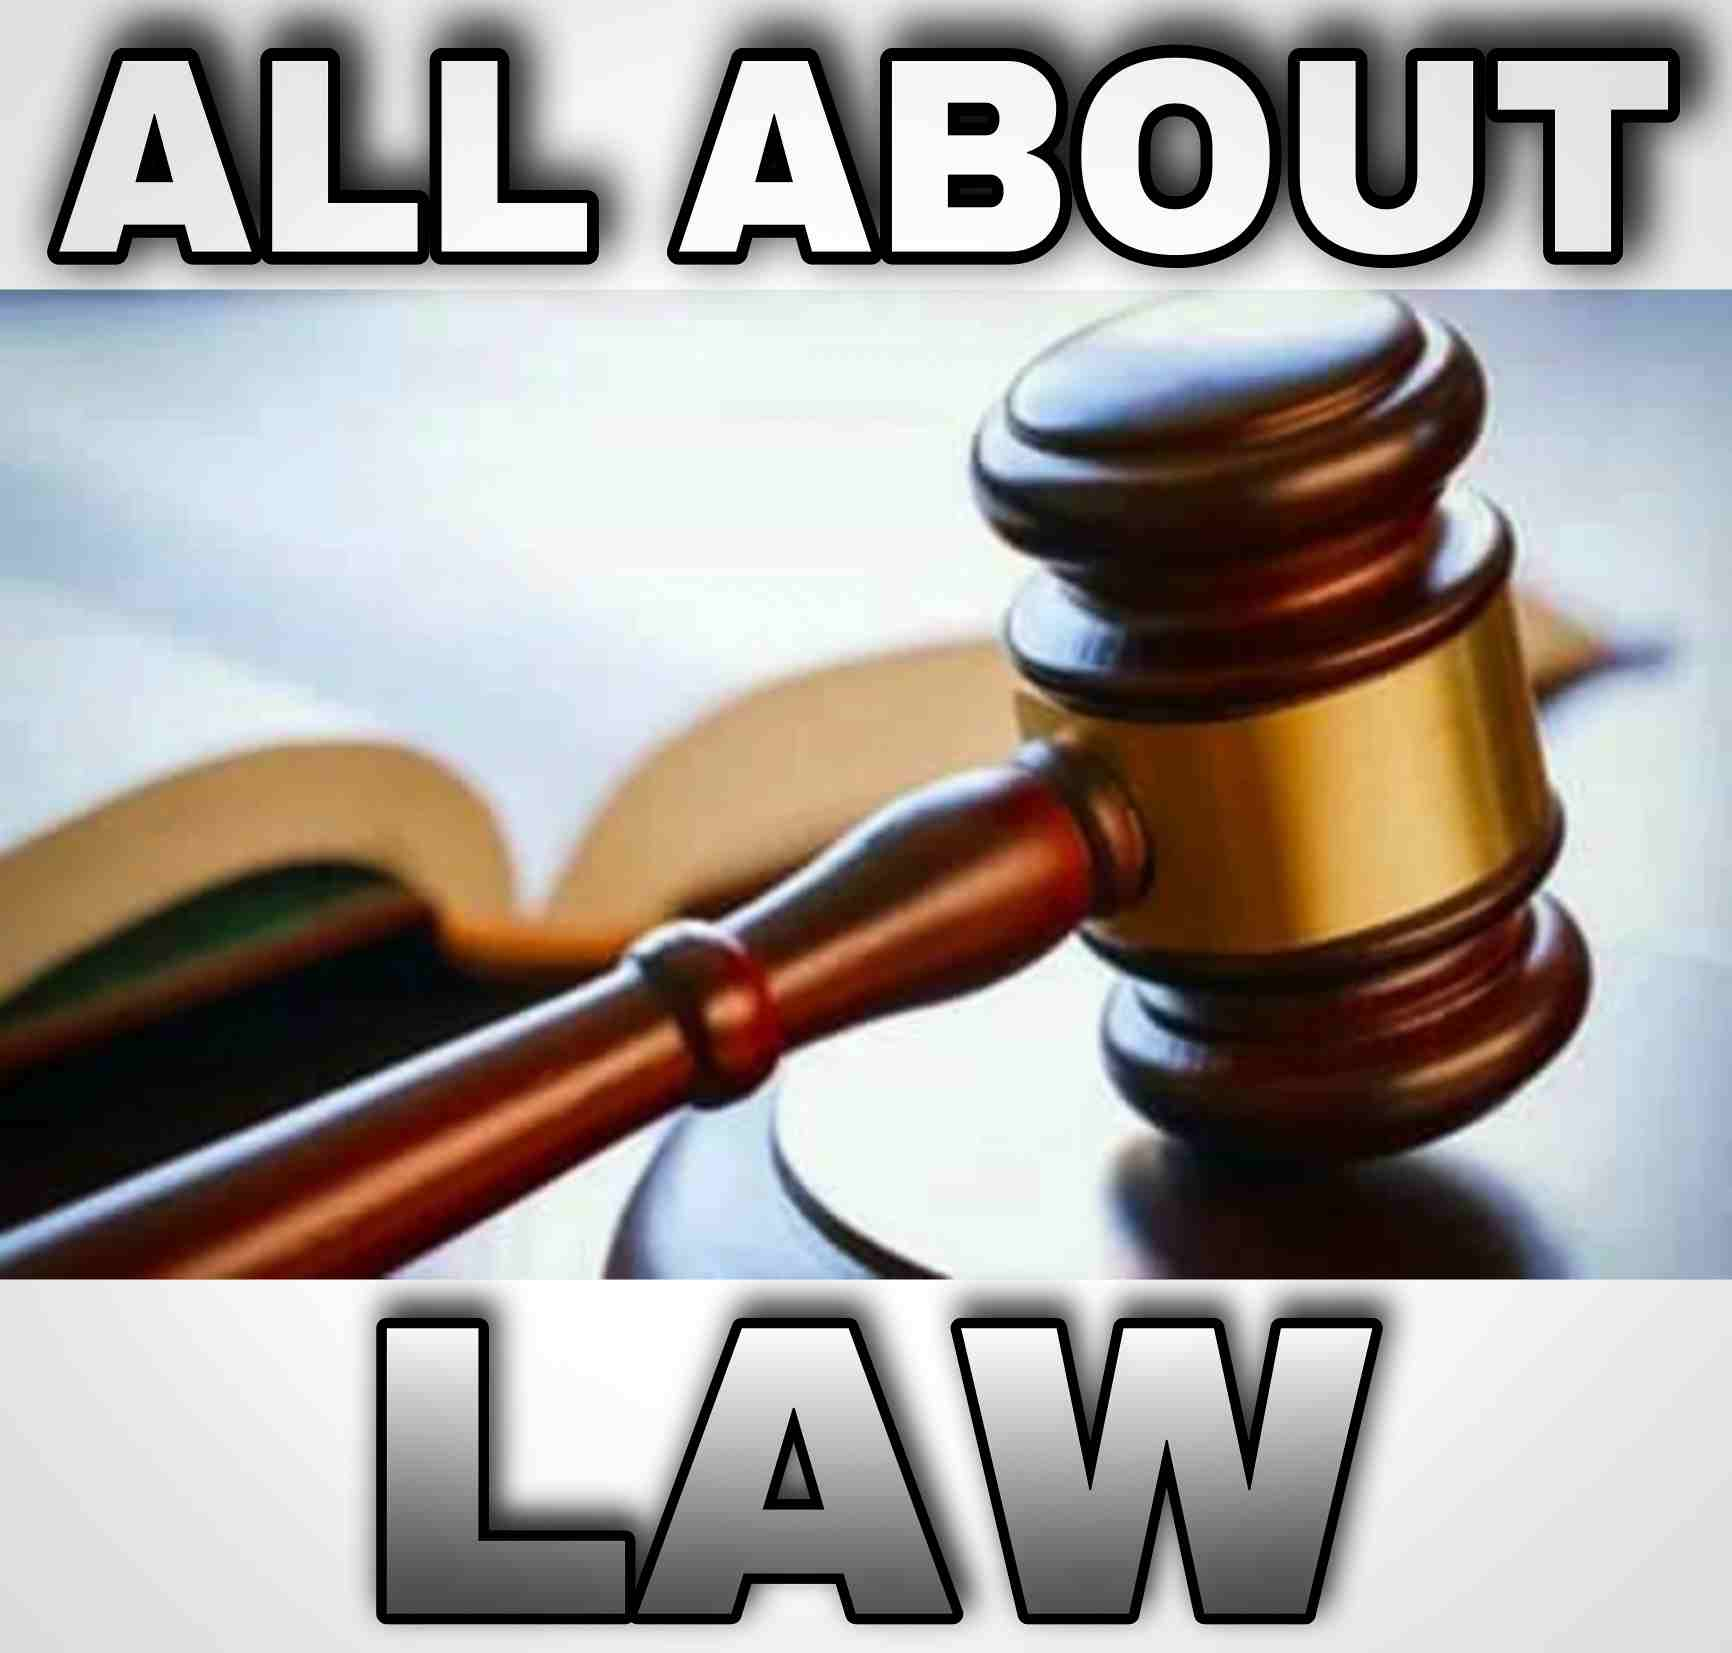 All about LLB : how much time LLB takes to complete and how to apply for LLB